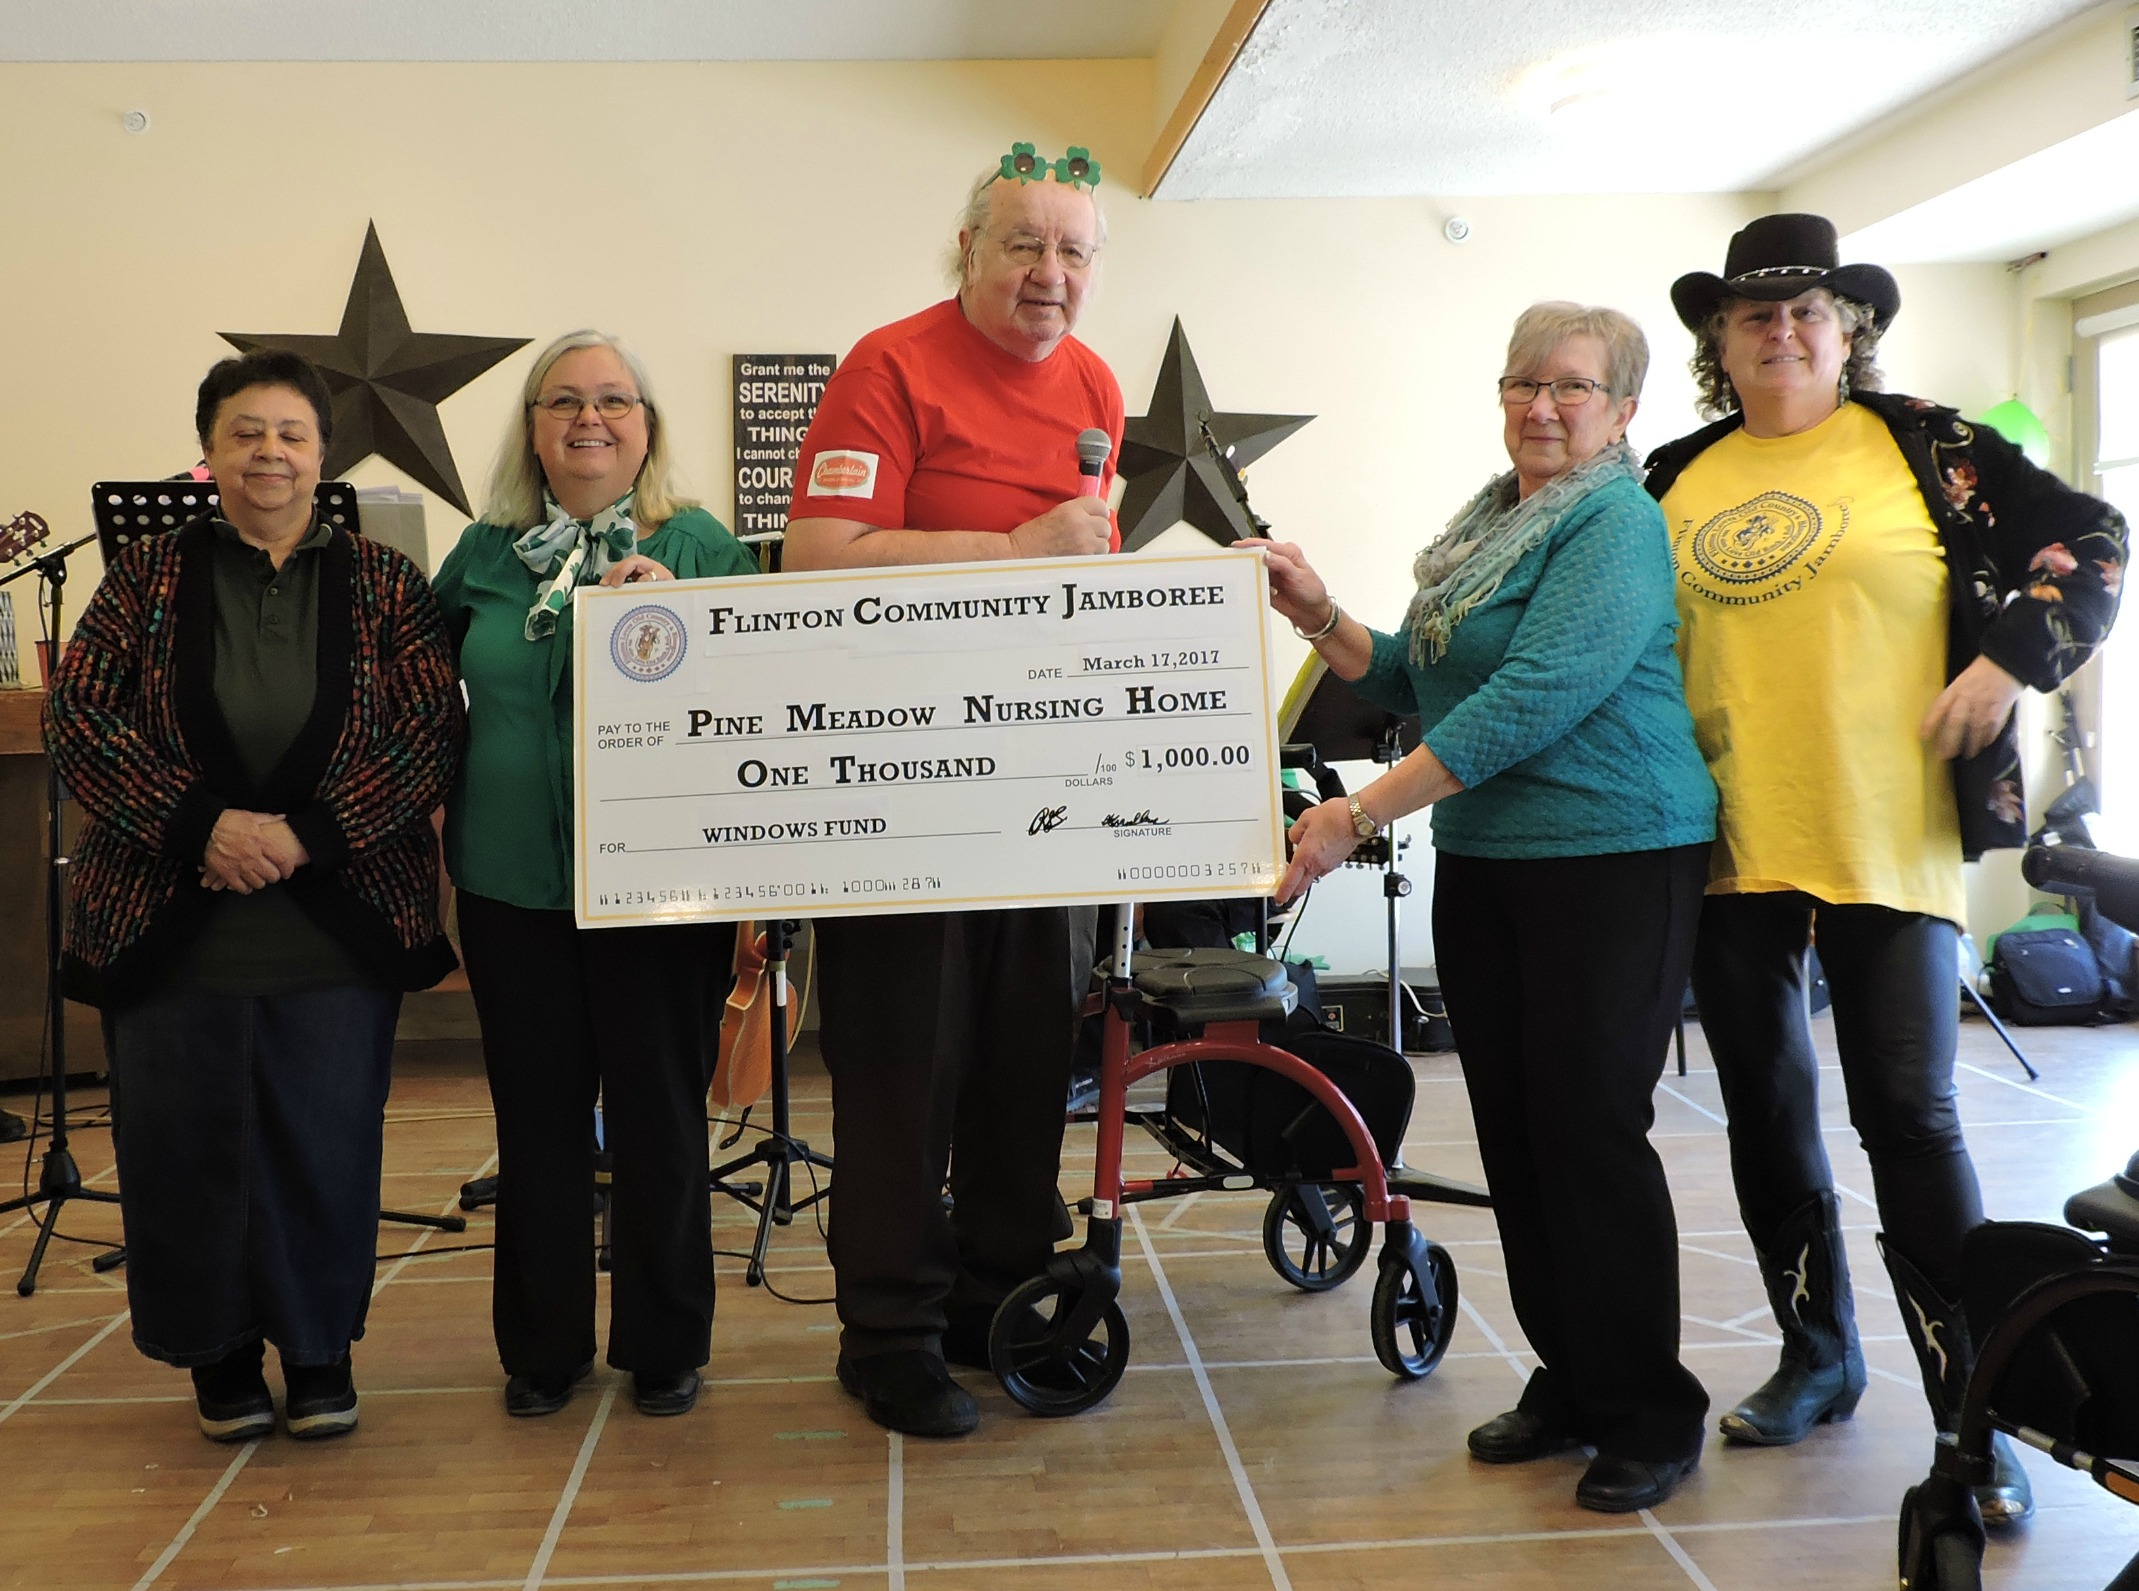 Flinton Community Jamboree Donates $1000 to Pine Meadow Nursing Home